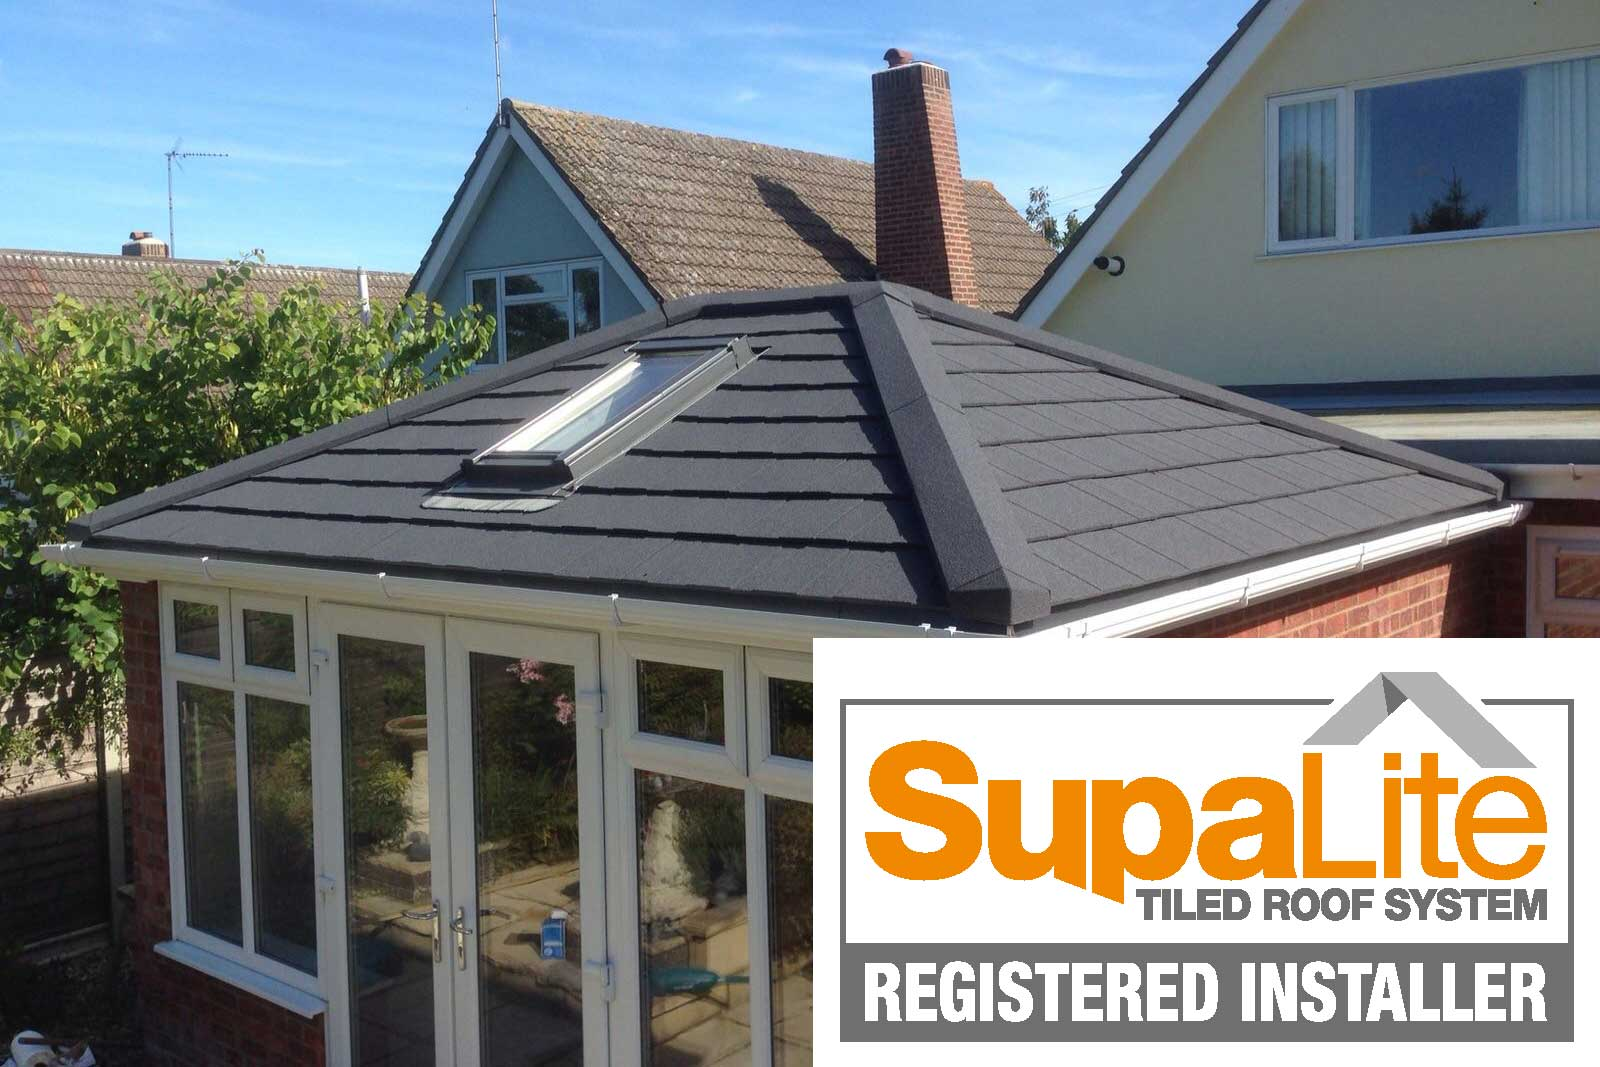 SupaLite Registered Installers